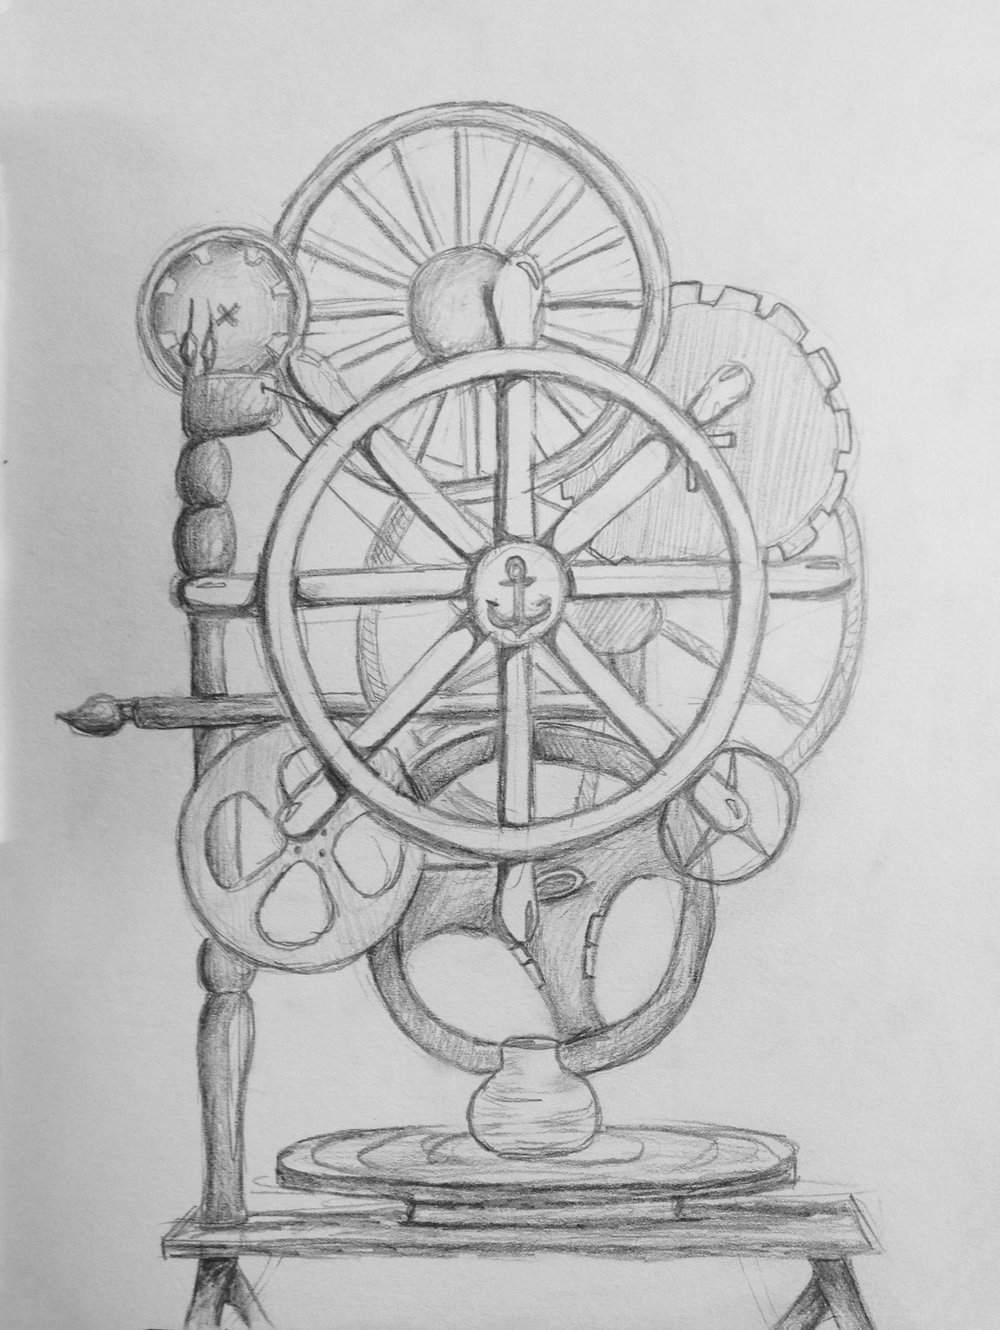 """Wheels""  Pencil on paper 5x7"" October 2014"